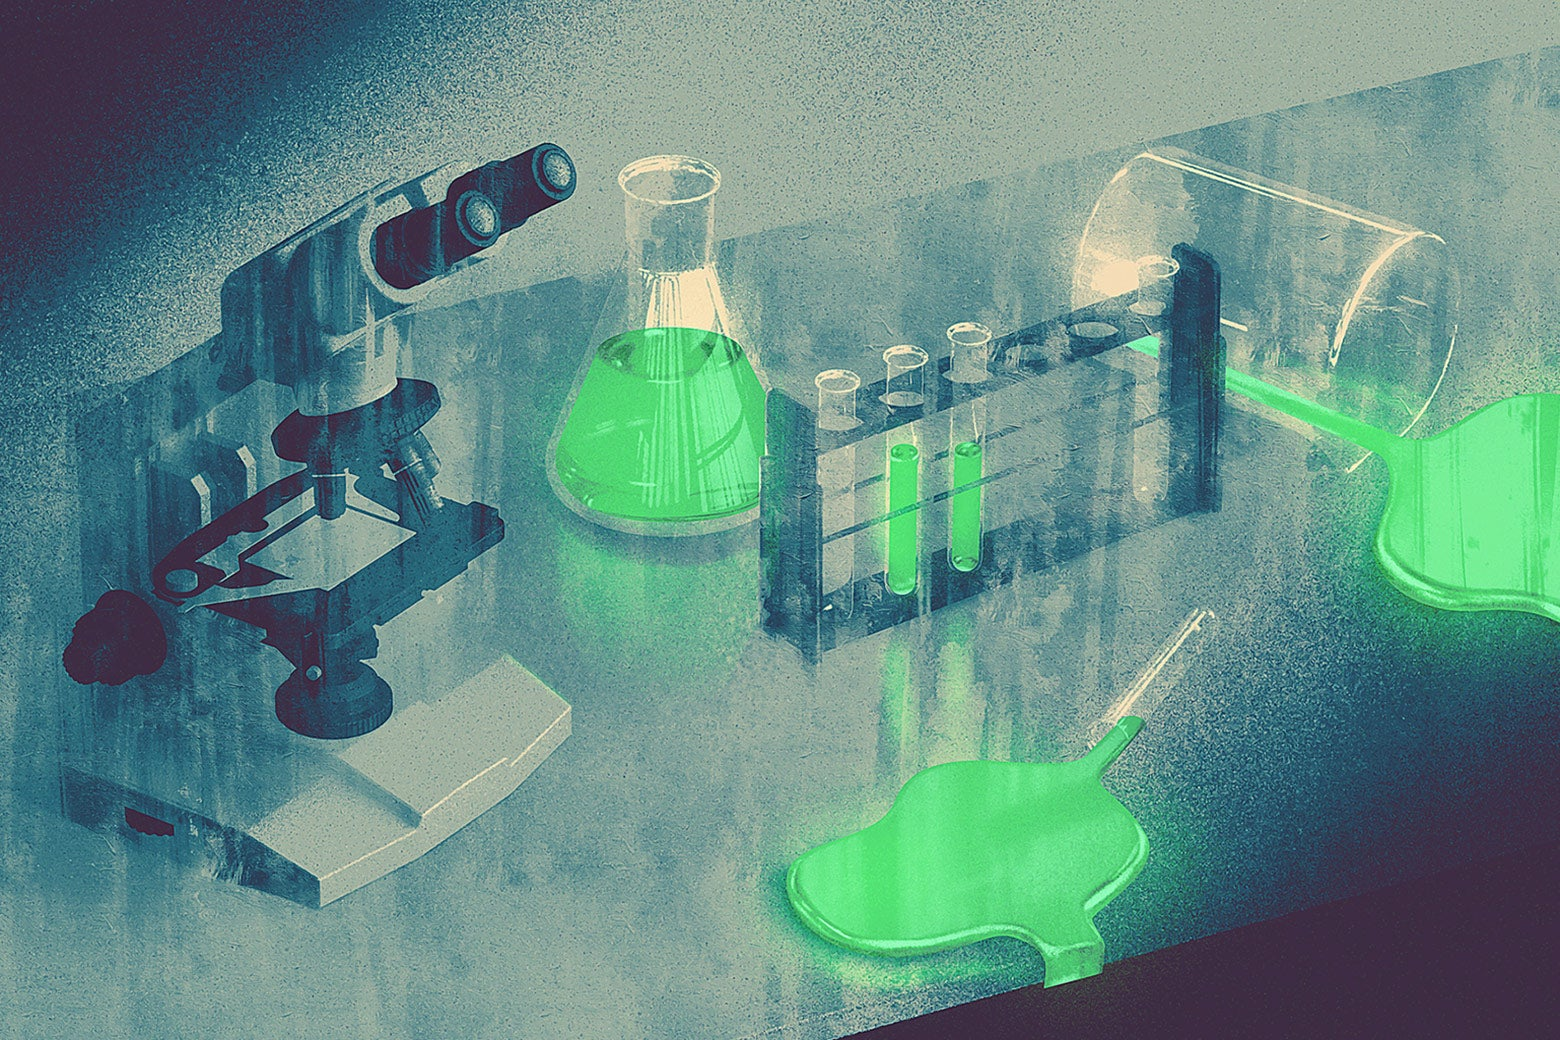 An illustration of a lab counter with test tubes and a microscope.